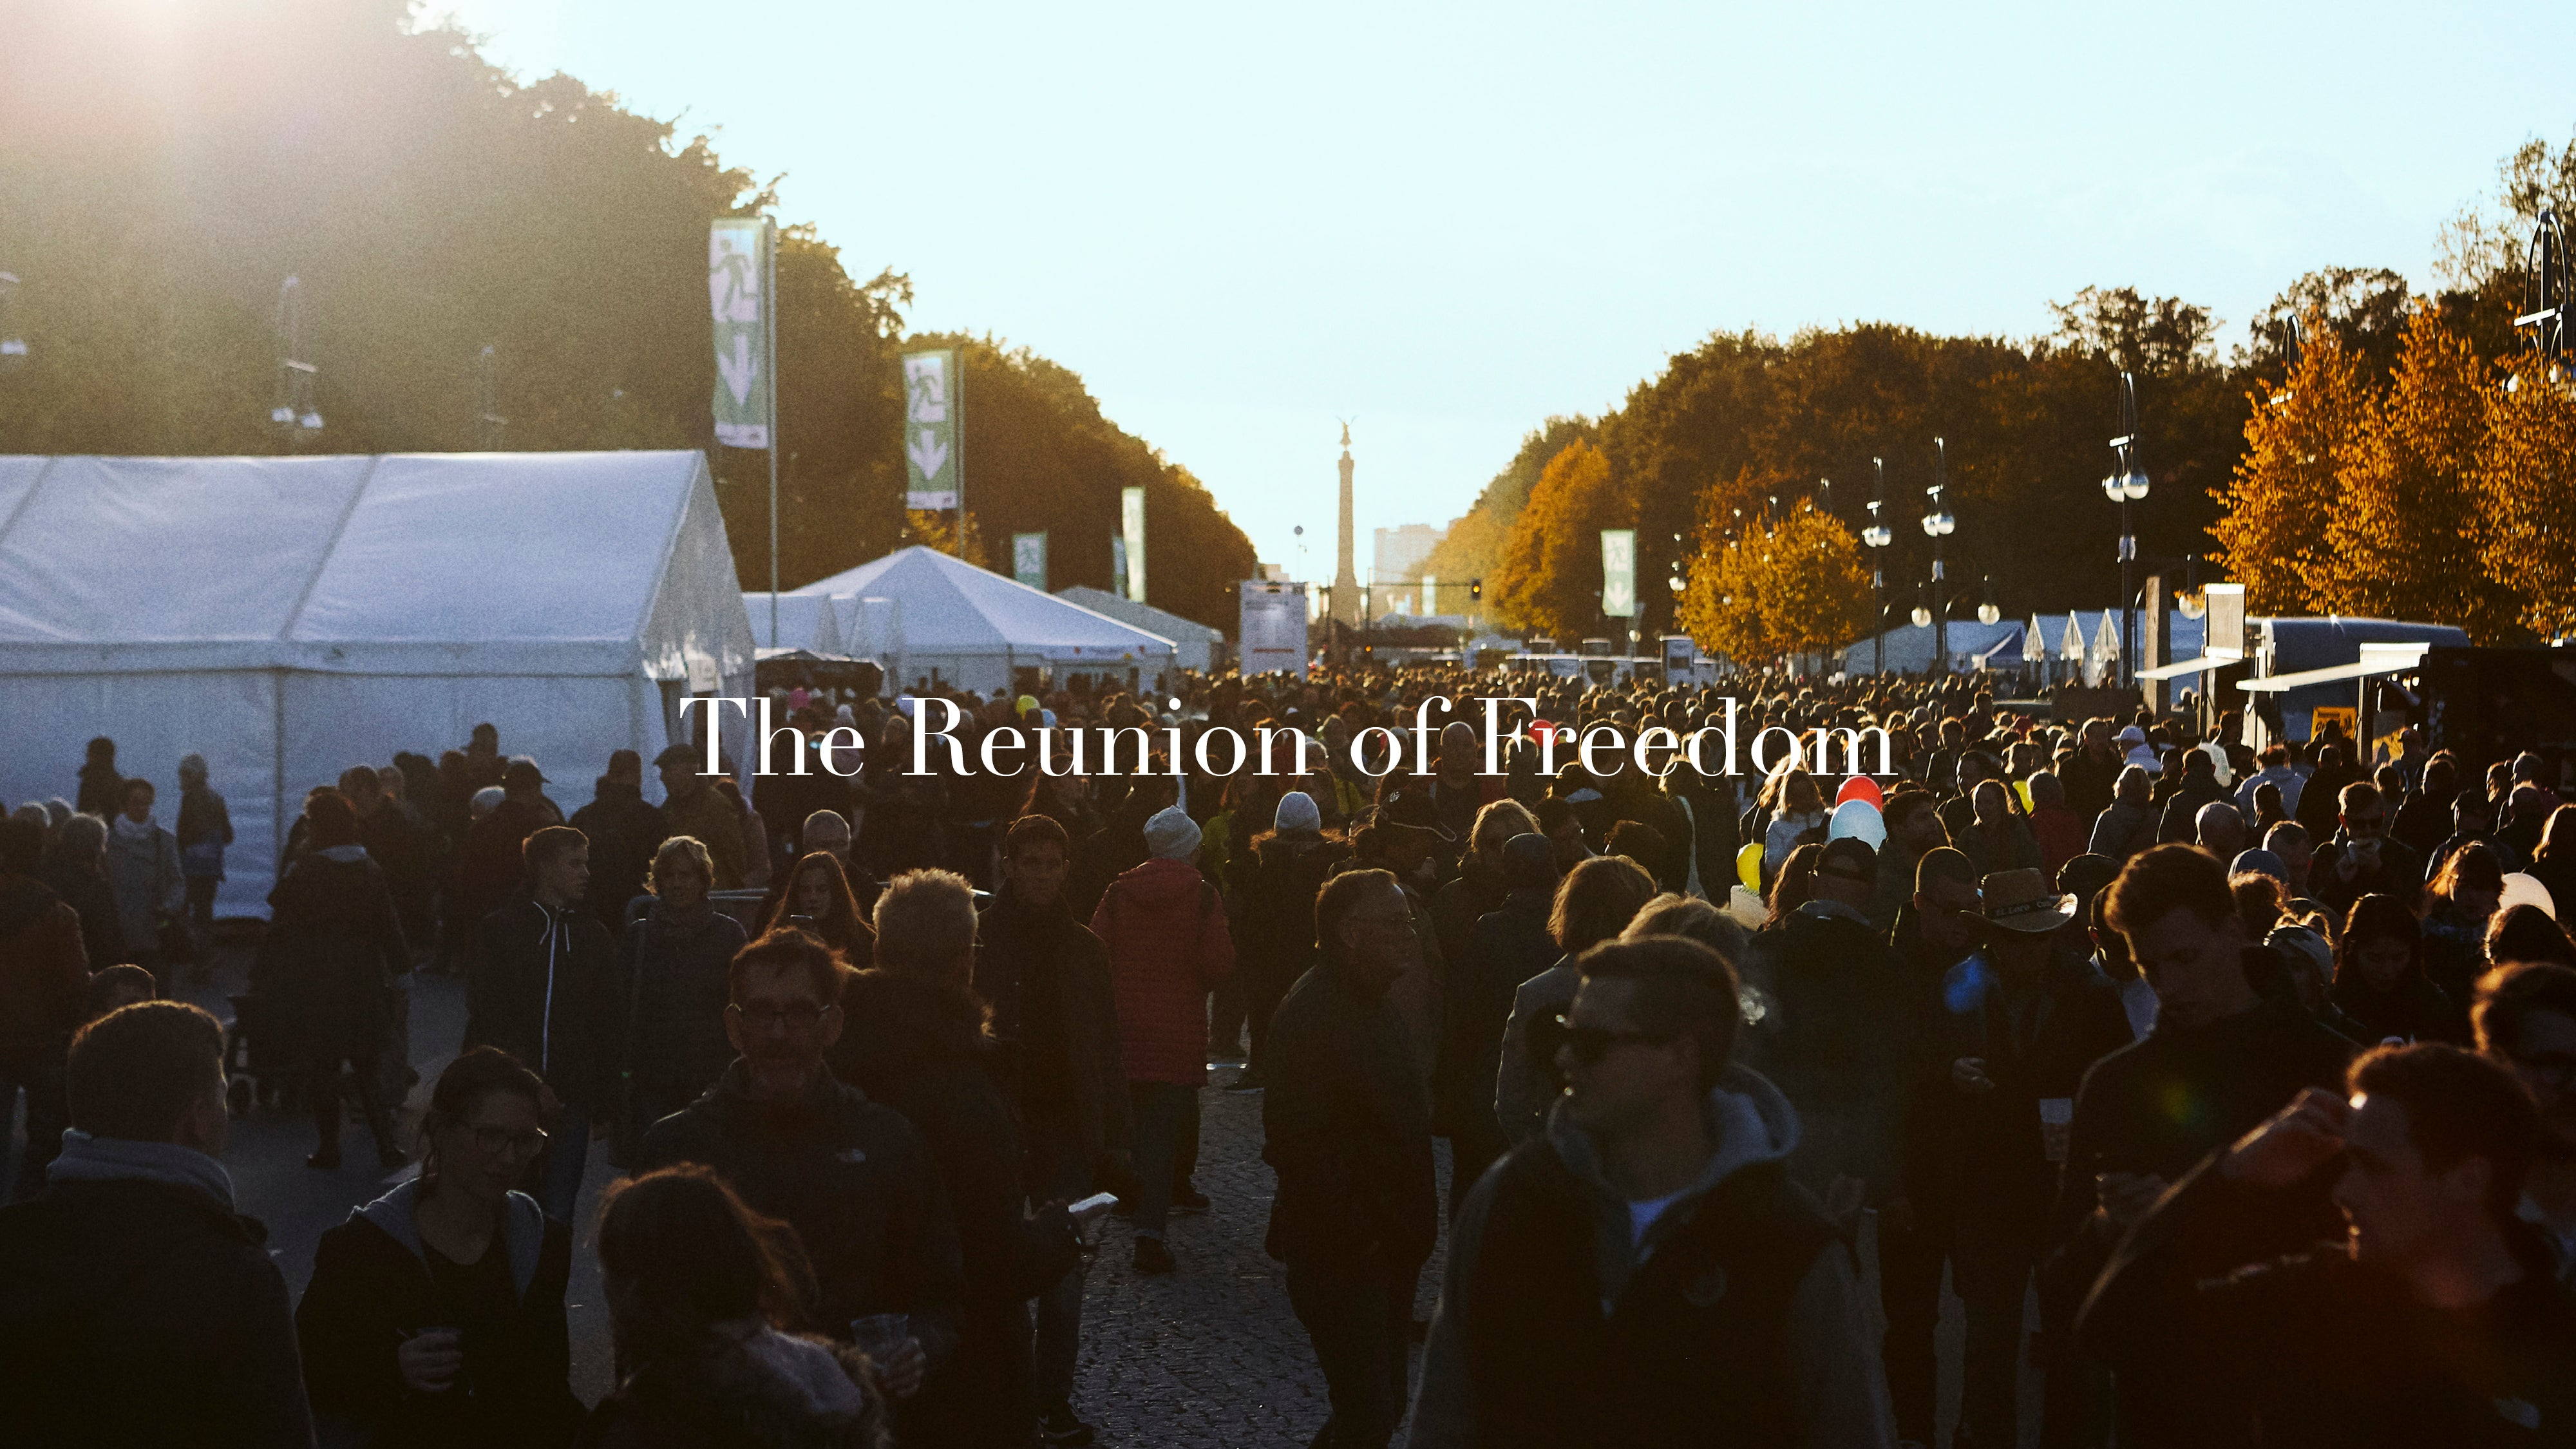 The Reunion of Freedom